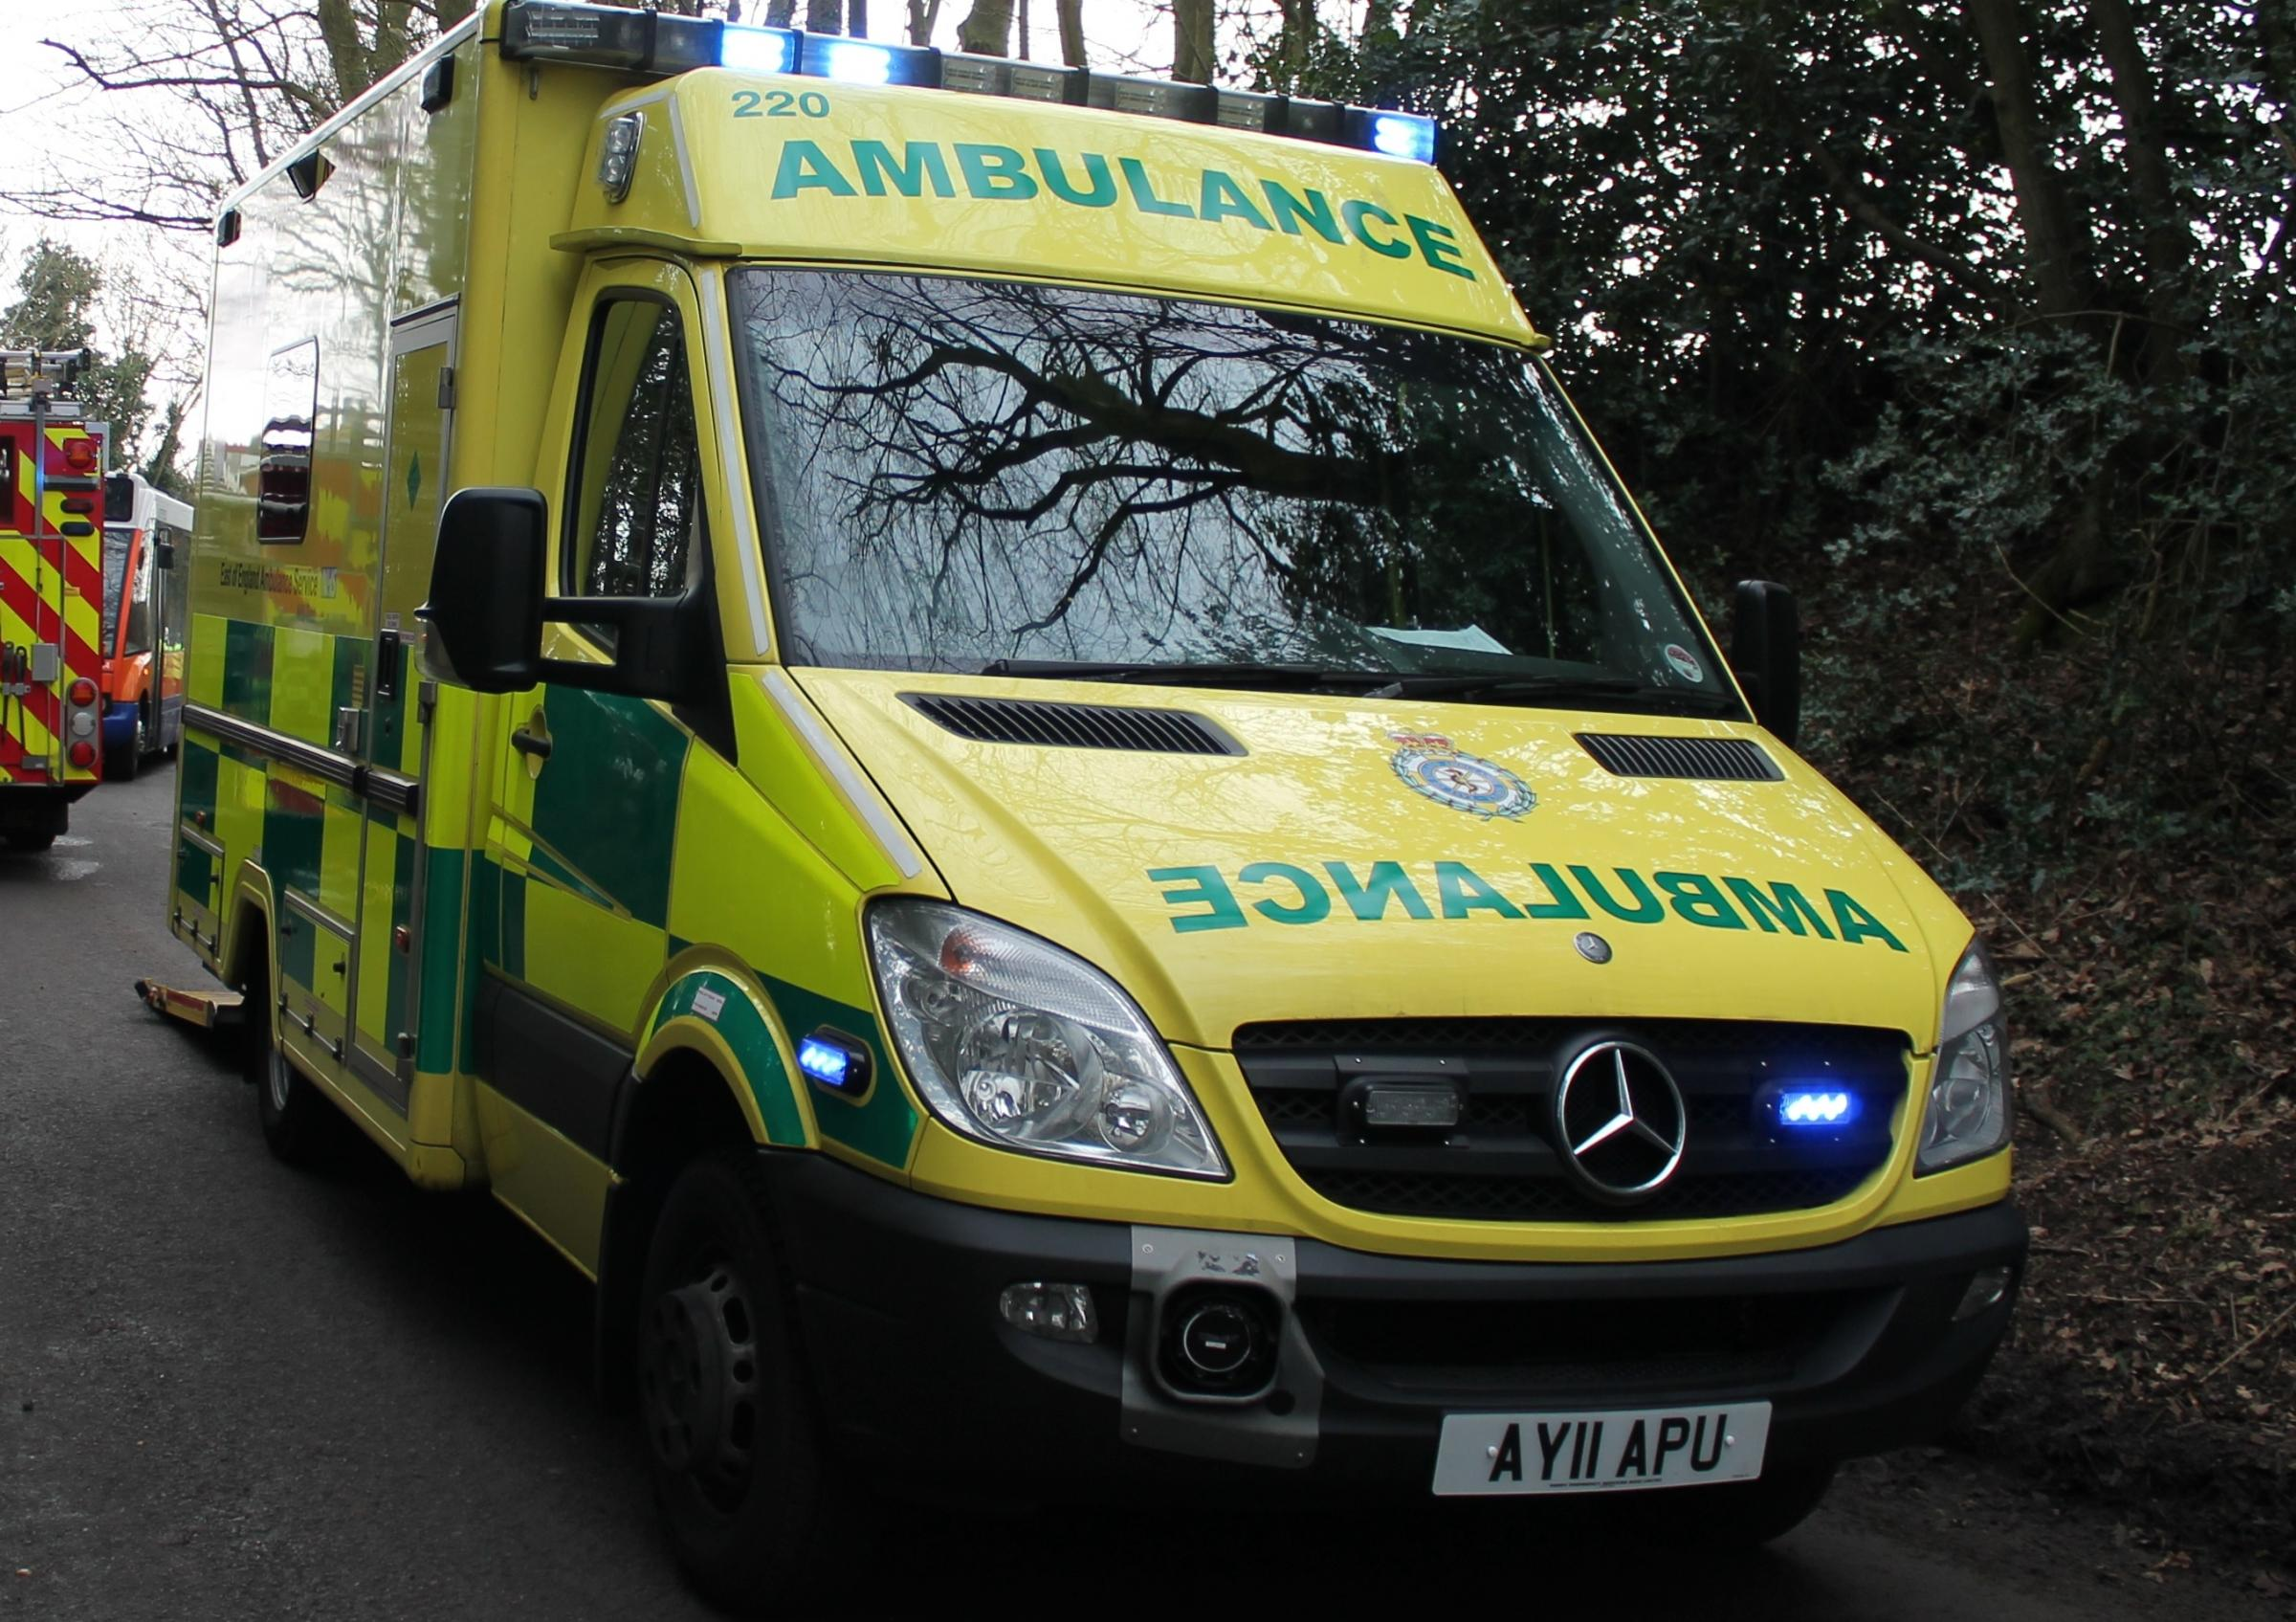 Police and ambulance crews were called to the scene at the junction of Long Lane, Clapham